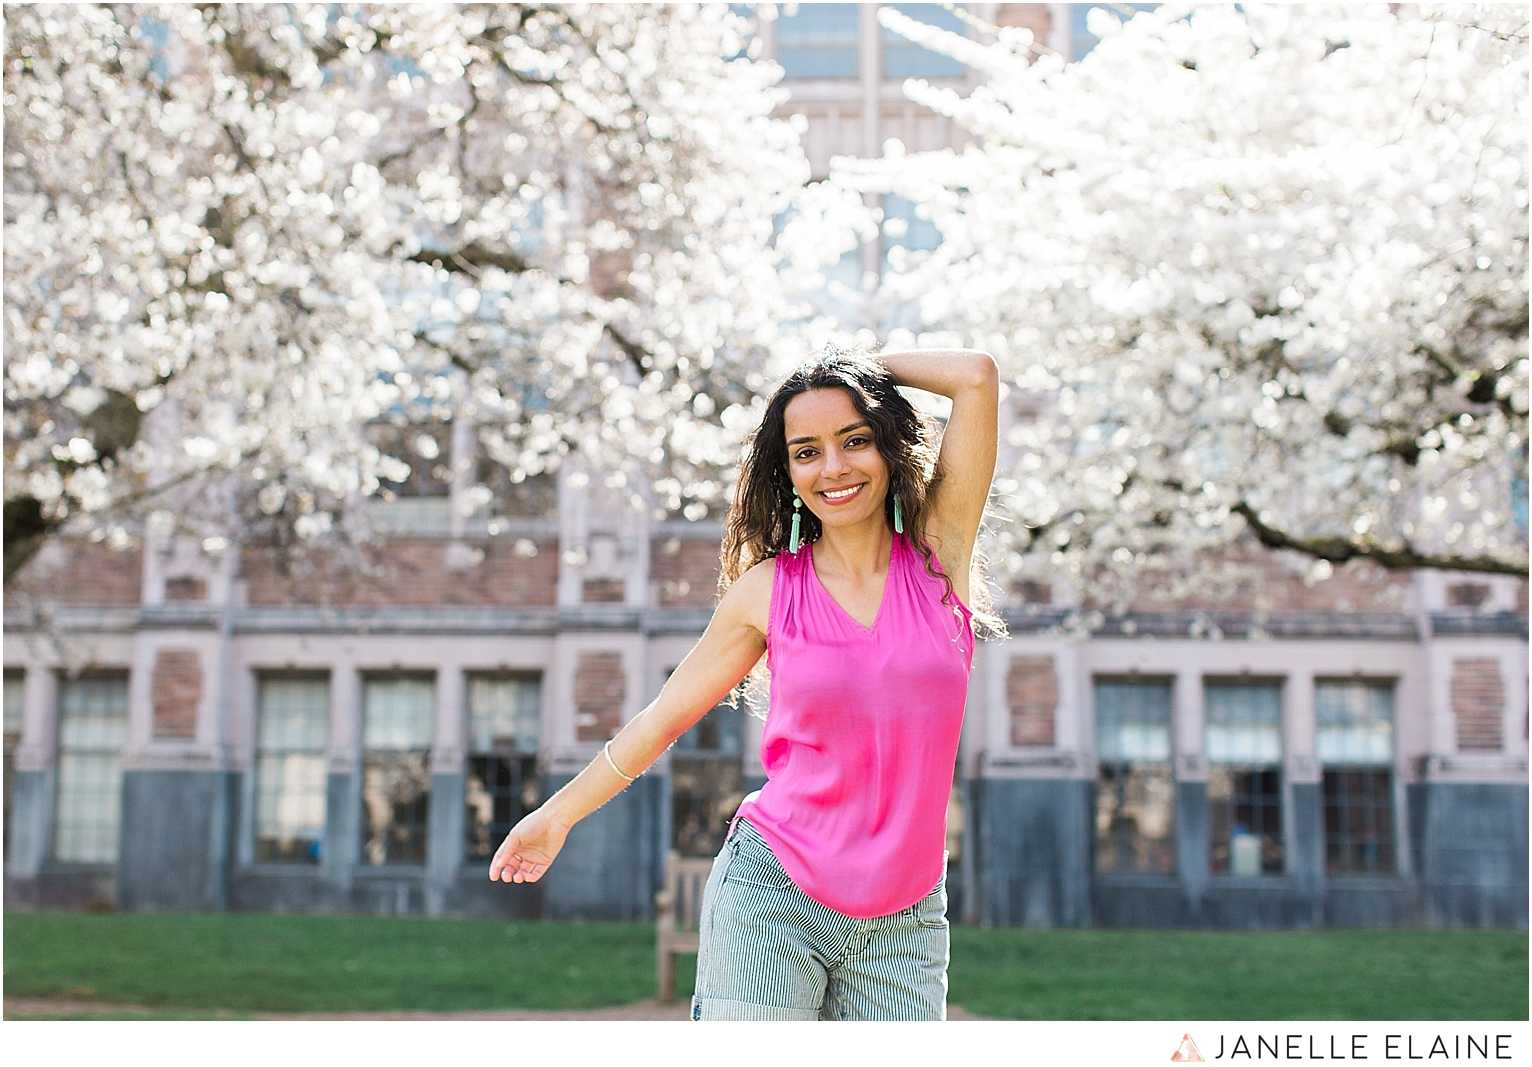 Sufience-Harkirat-spring portrait session-cherry blossoms-uw-seattle photographer janelle elaine-113.jpg